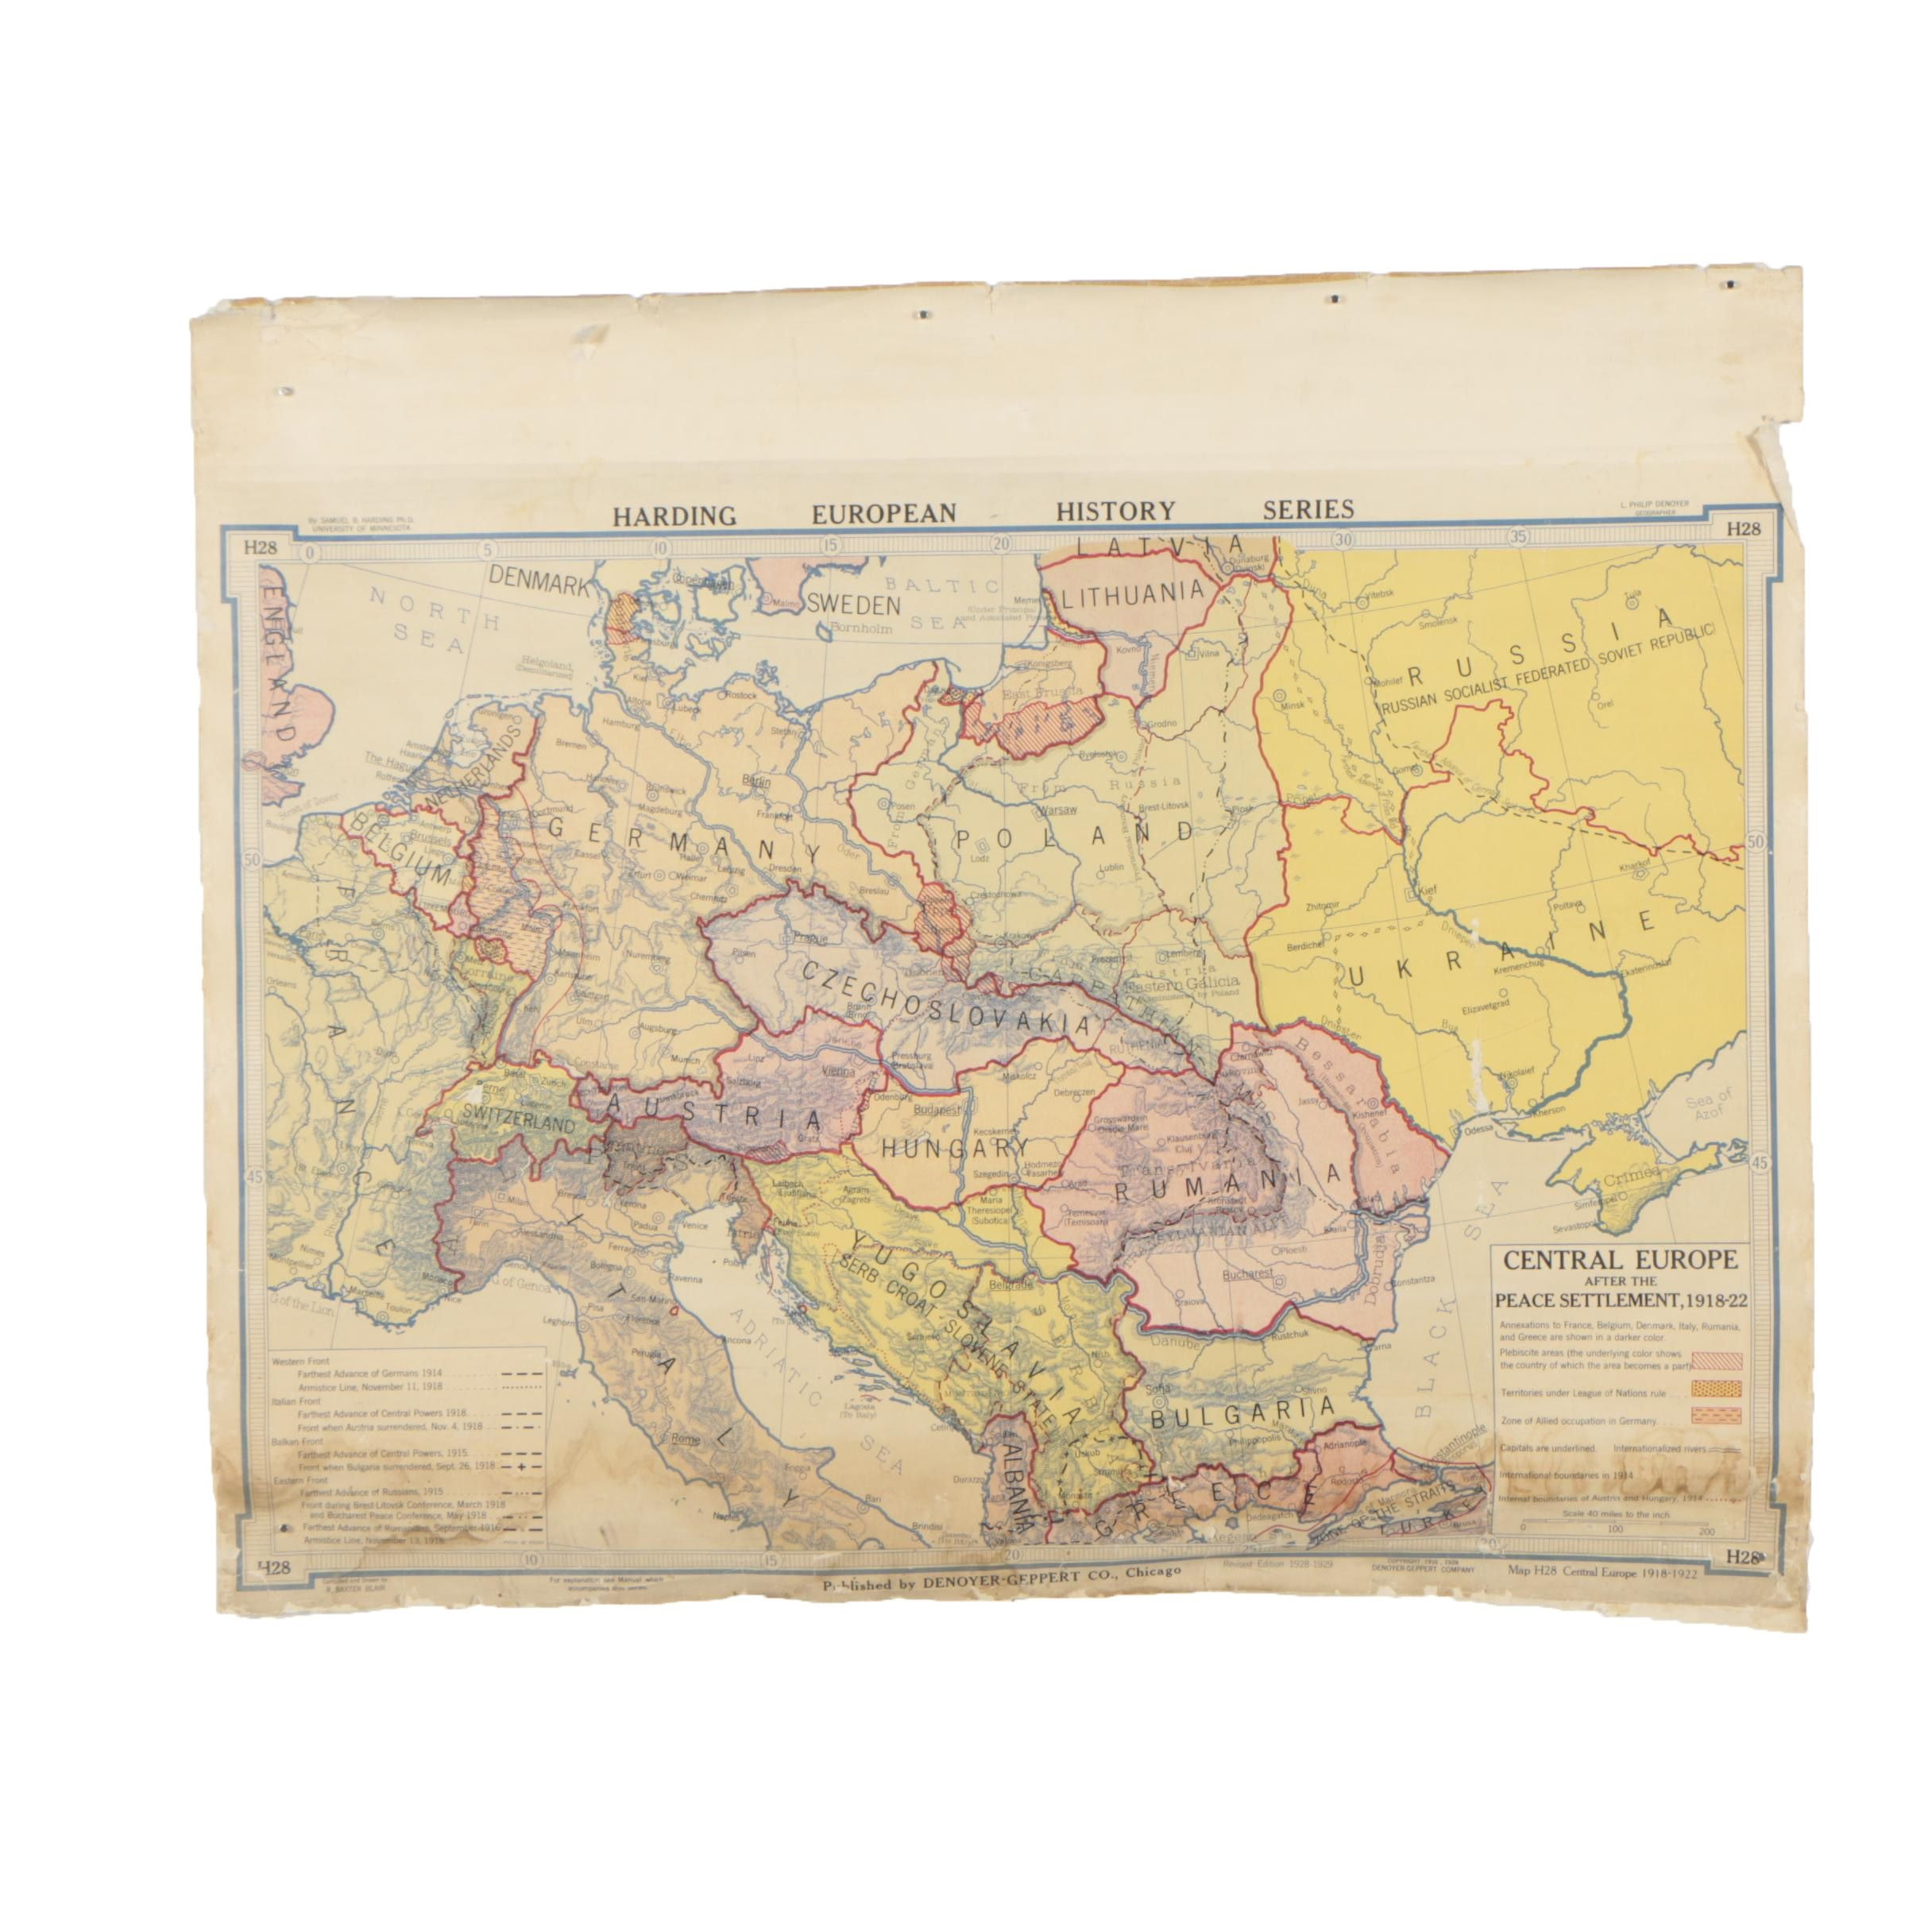 Vintage Wall Map of Central Europe After the Peace Settlement